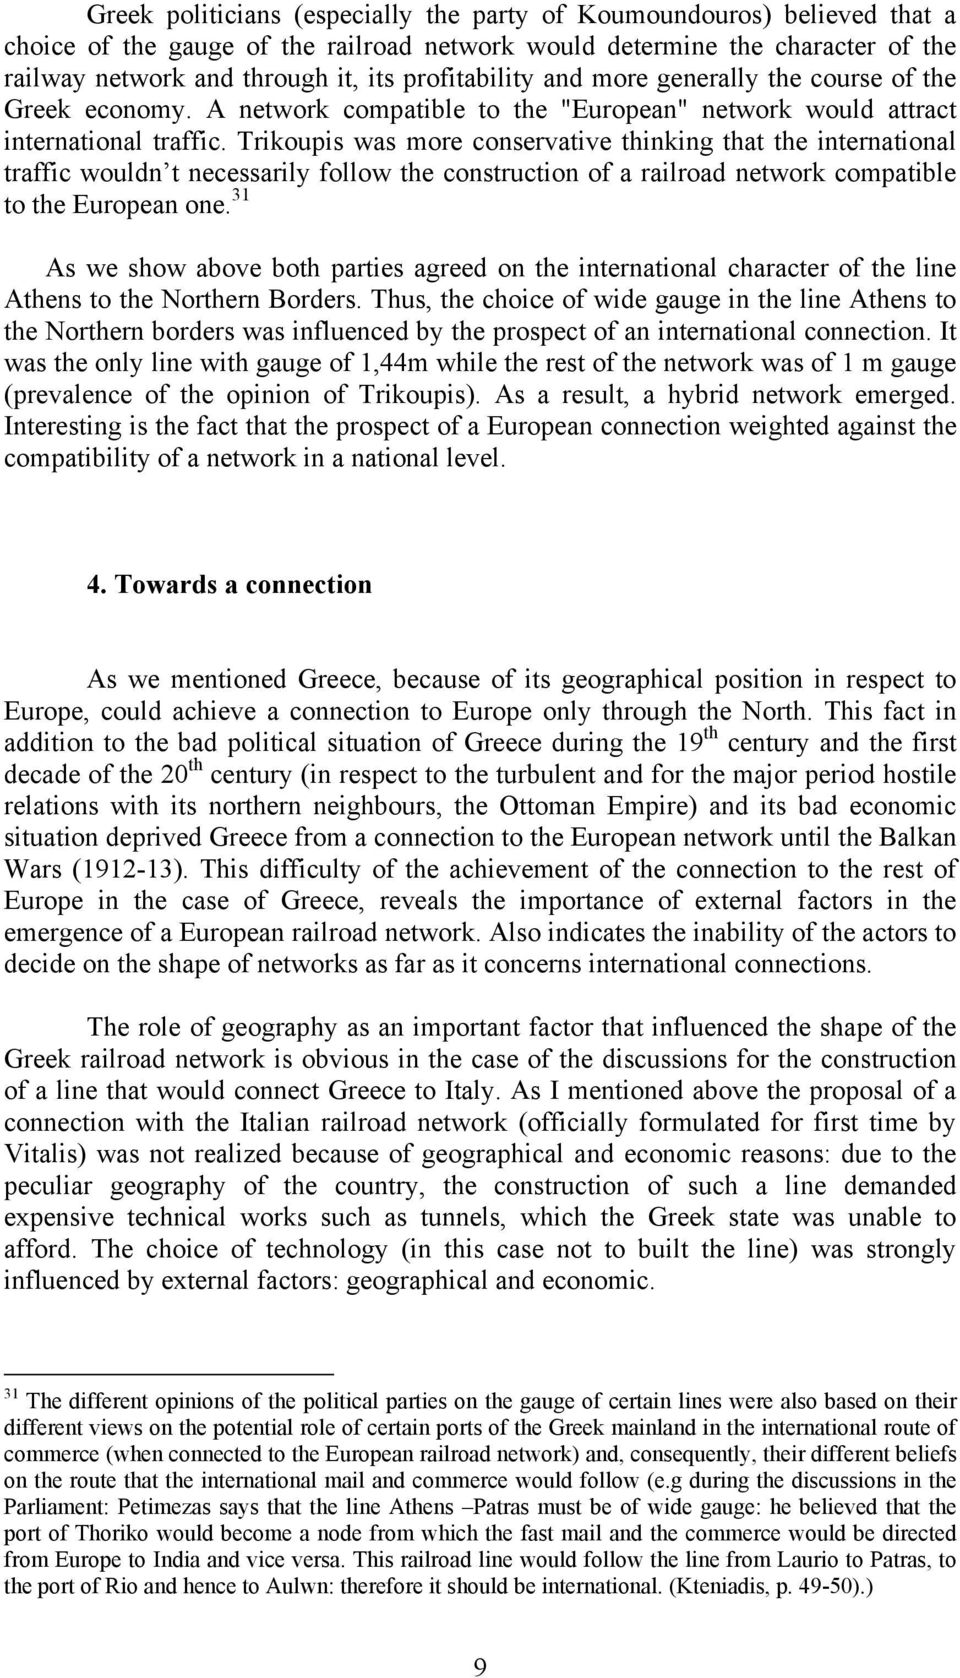 Trikoupis was more conservative thinking that the international traffic wouldn t necessarily follow the construction of a railroad network compatible to the European one.